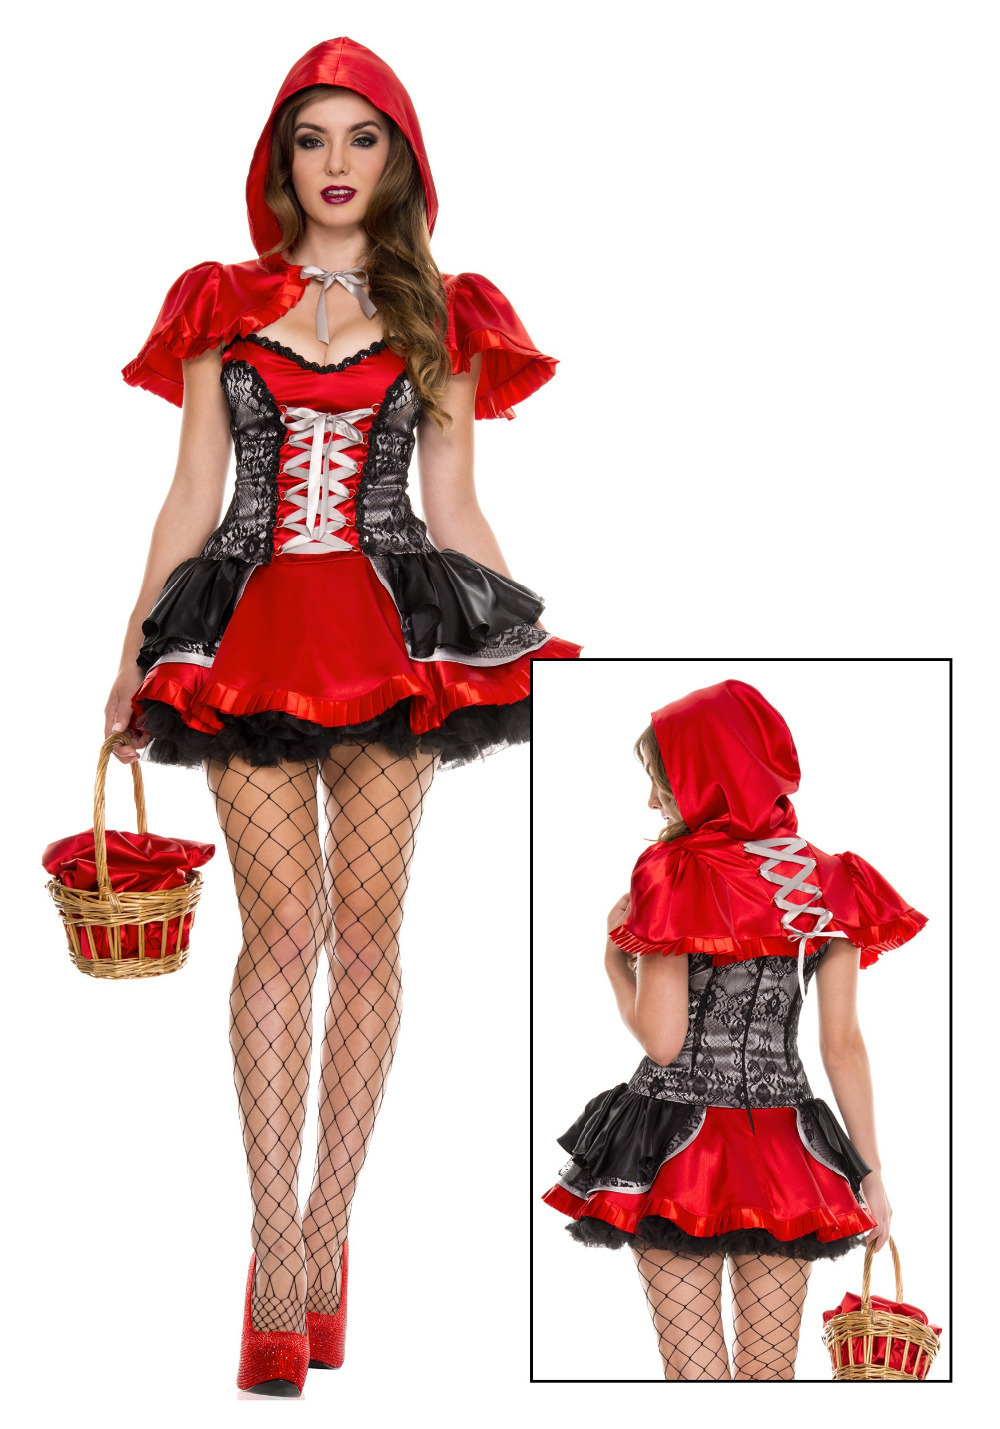 UTMEON  Sexy Cardinal Little Red Riding Hood Costume Adult Women Halloween Fancy Outfit Sexy Halloween Costumes Free shipping